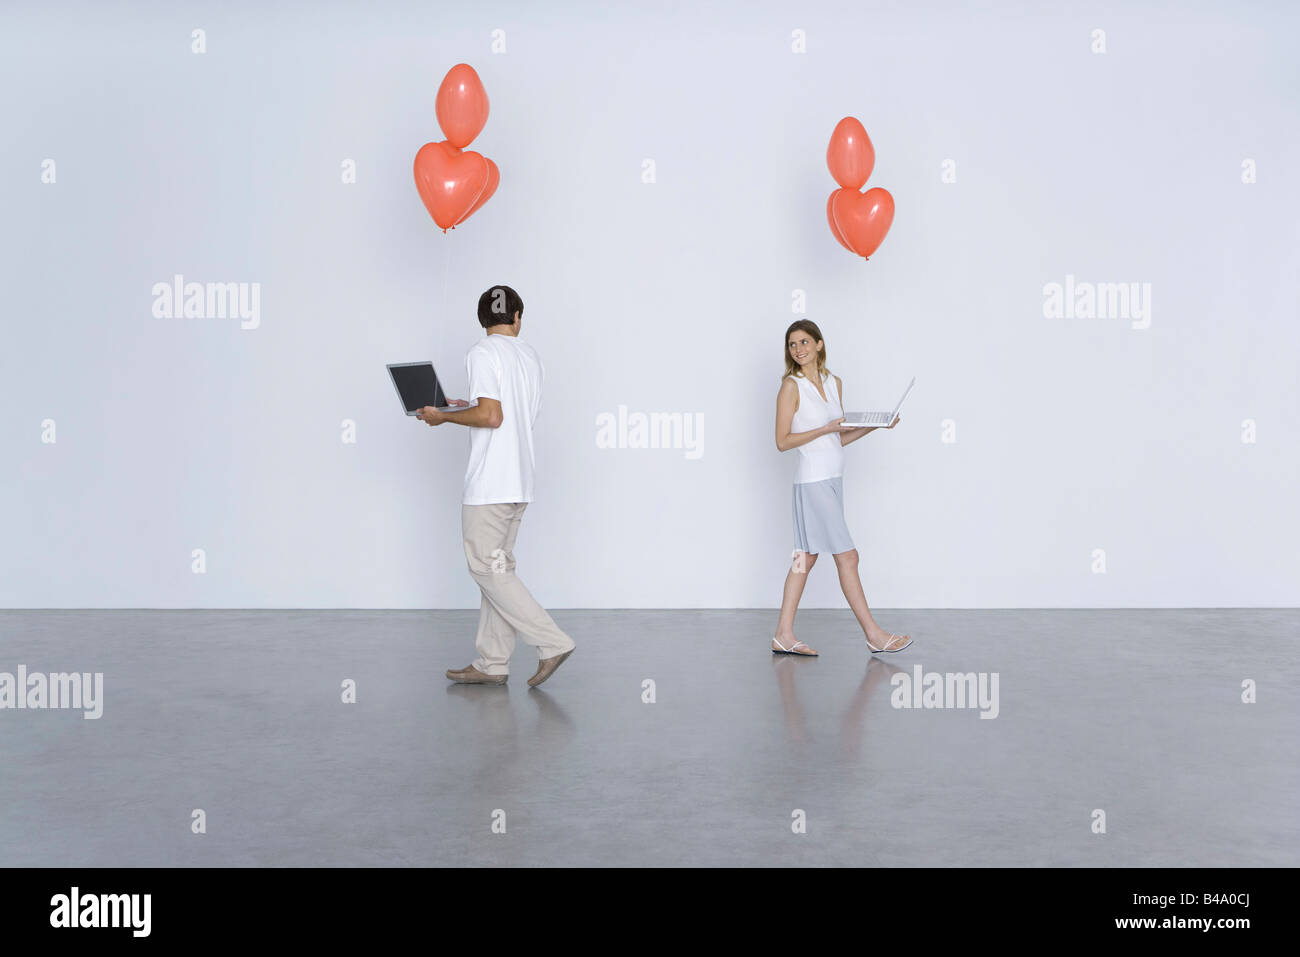 Man and woman carrying laptop computers and heart balloons, smiling over their shoulders at each other - Stock Image